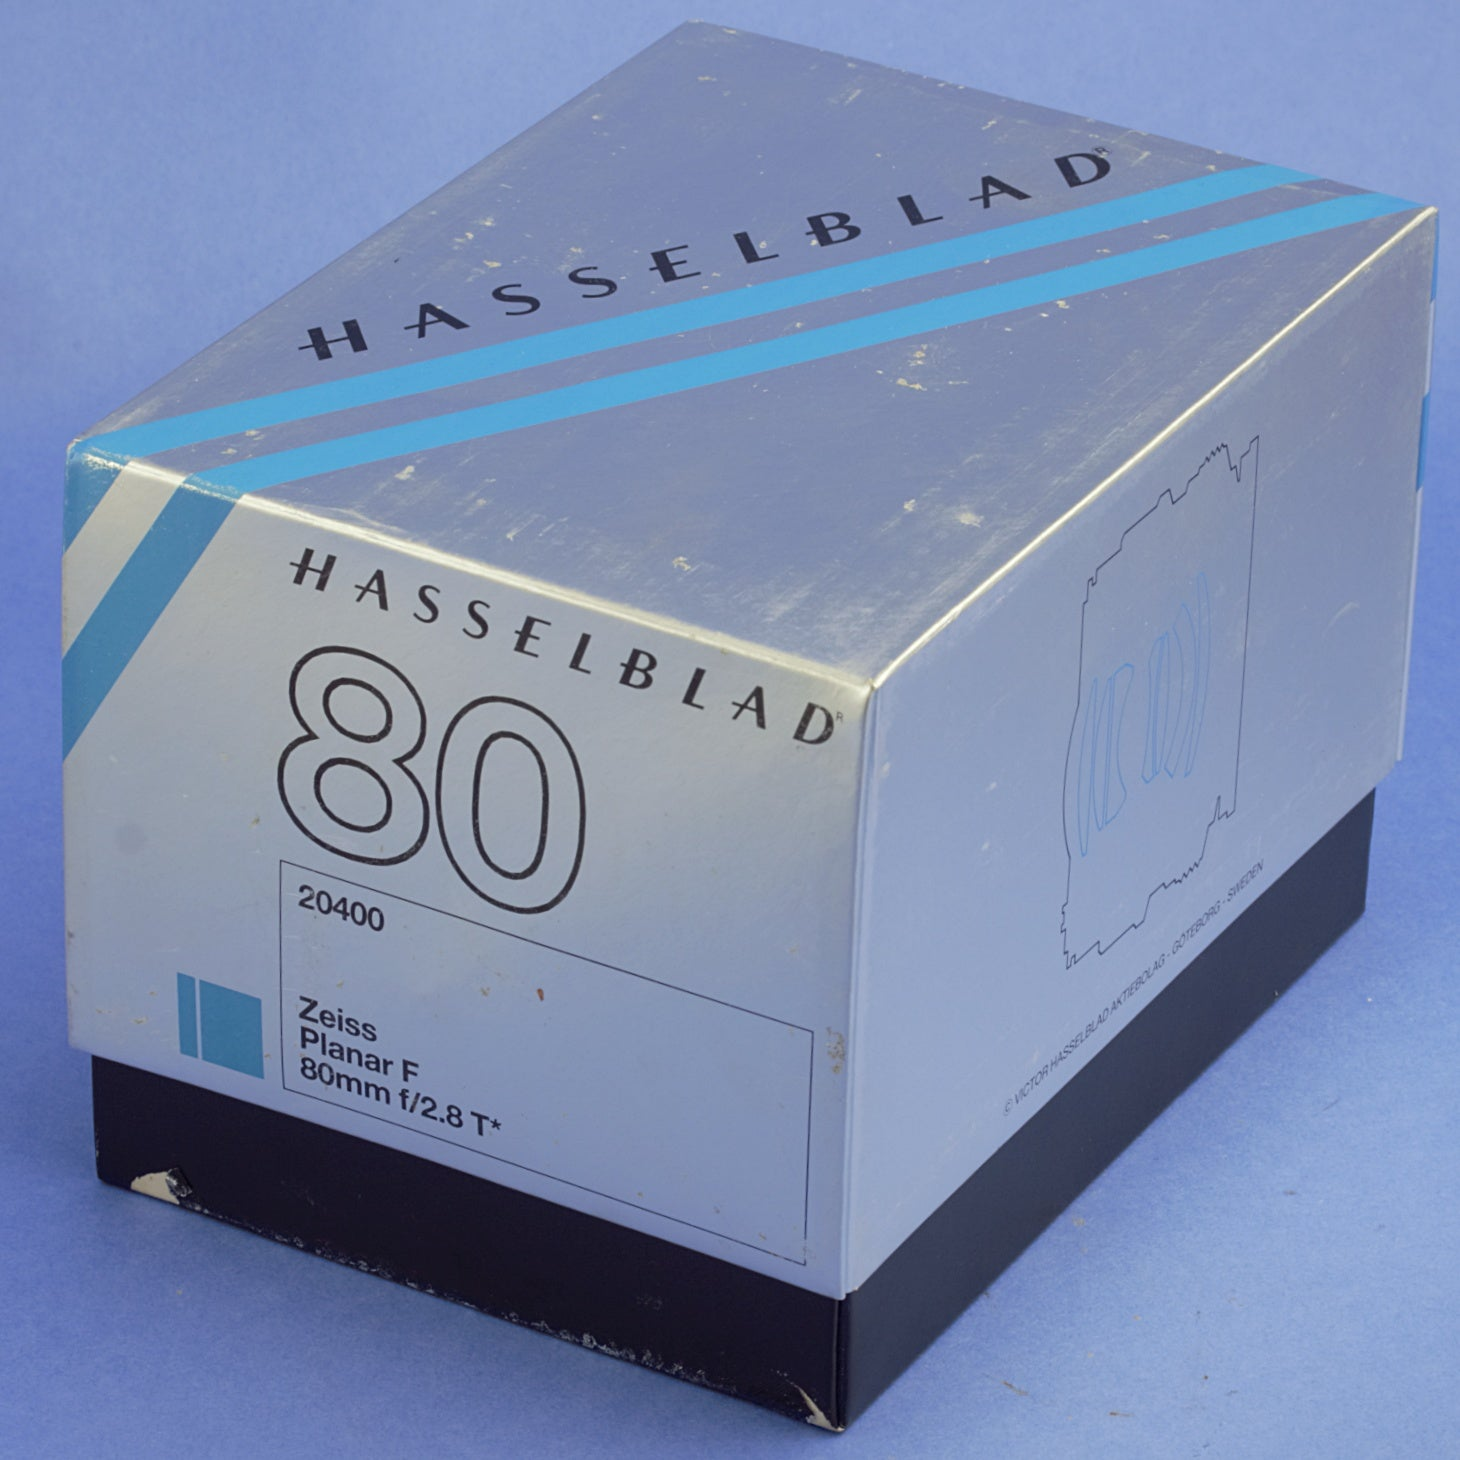 Hasselblad Planar 80mm 2.8 F Lens for 200 Series Mint Condition